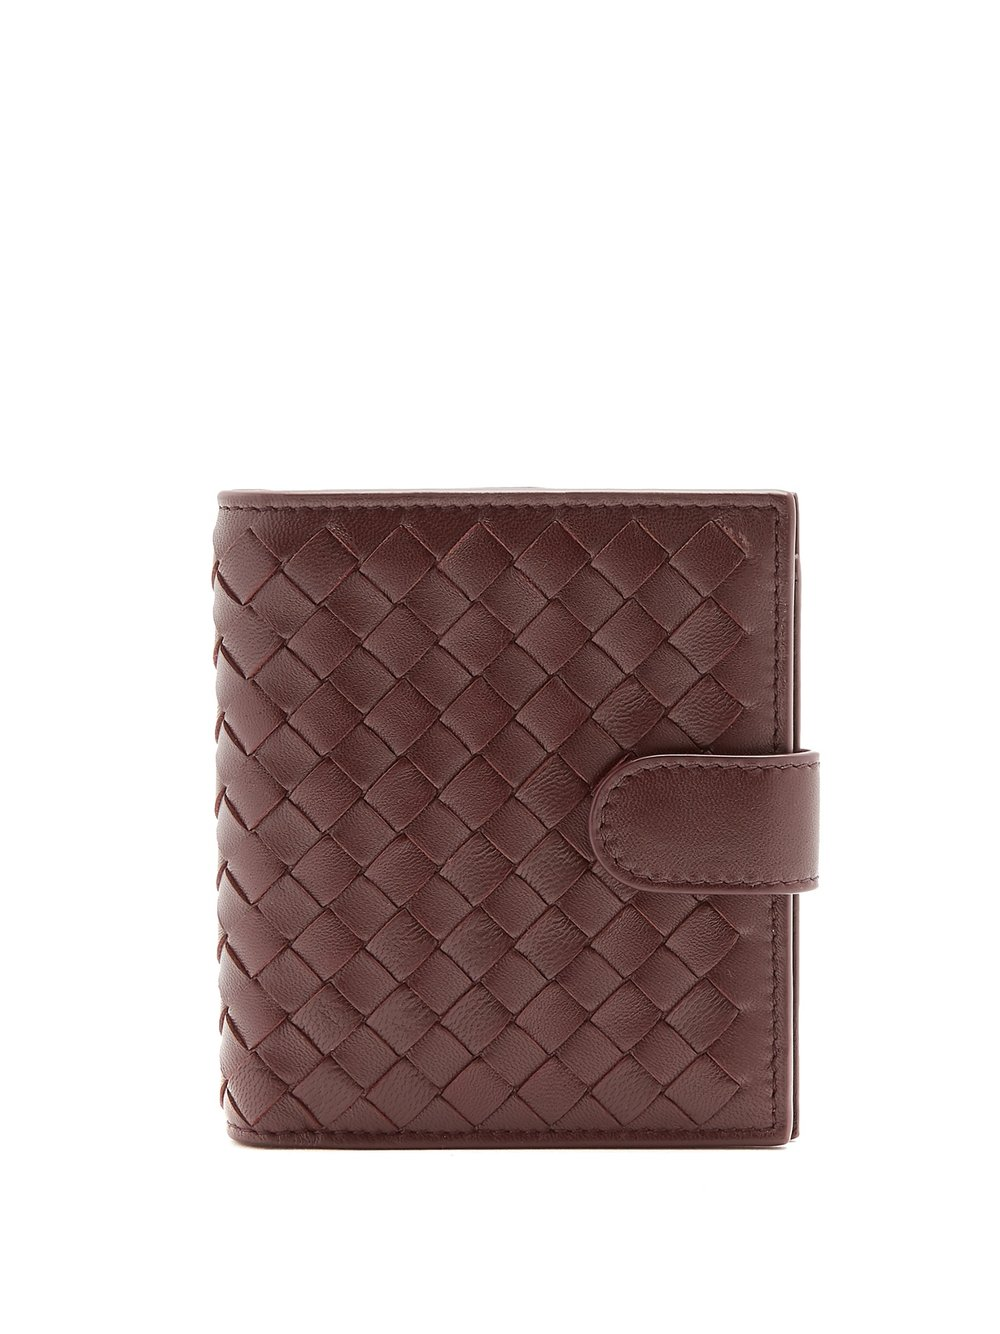 Mini Wallet   Burgundy